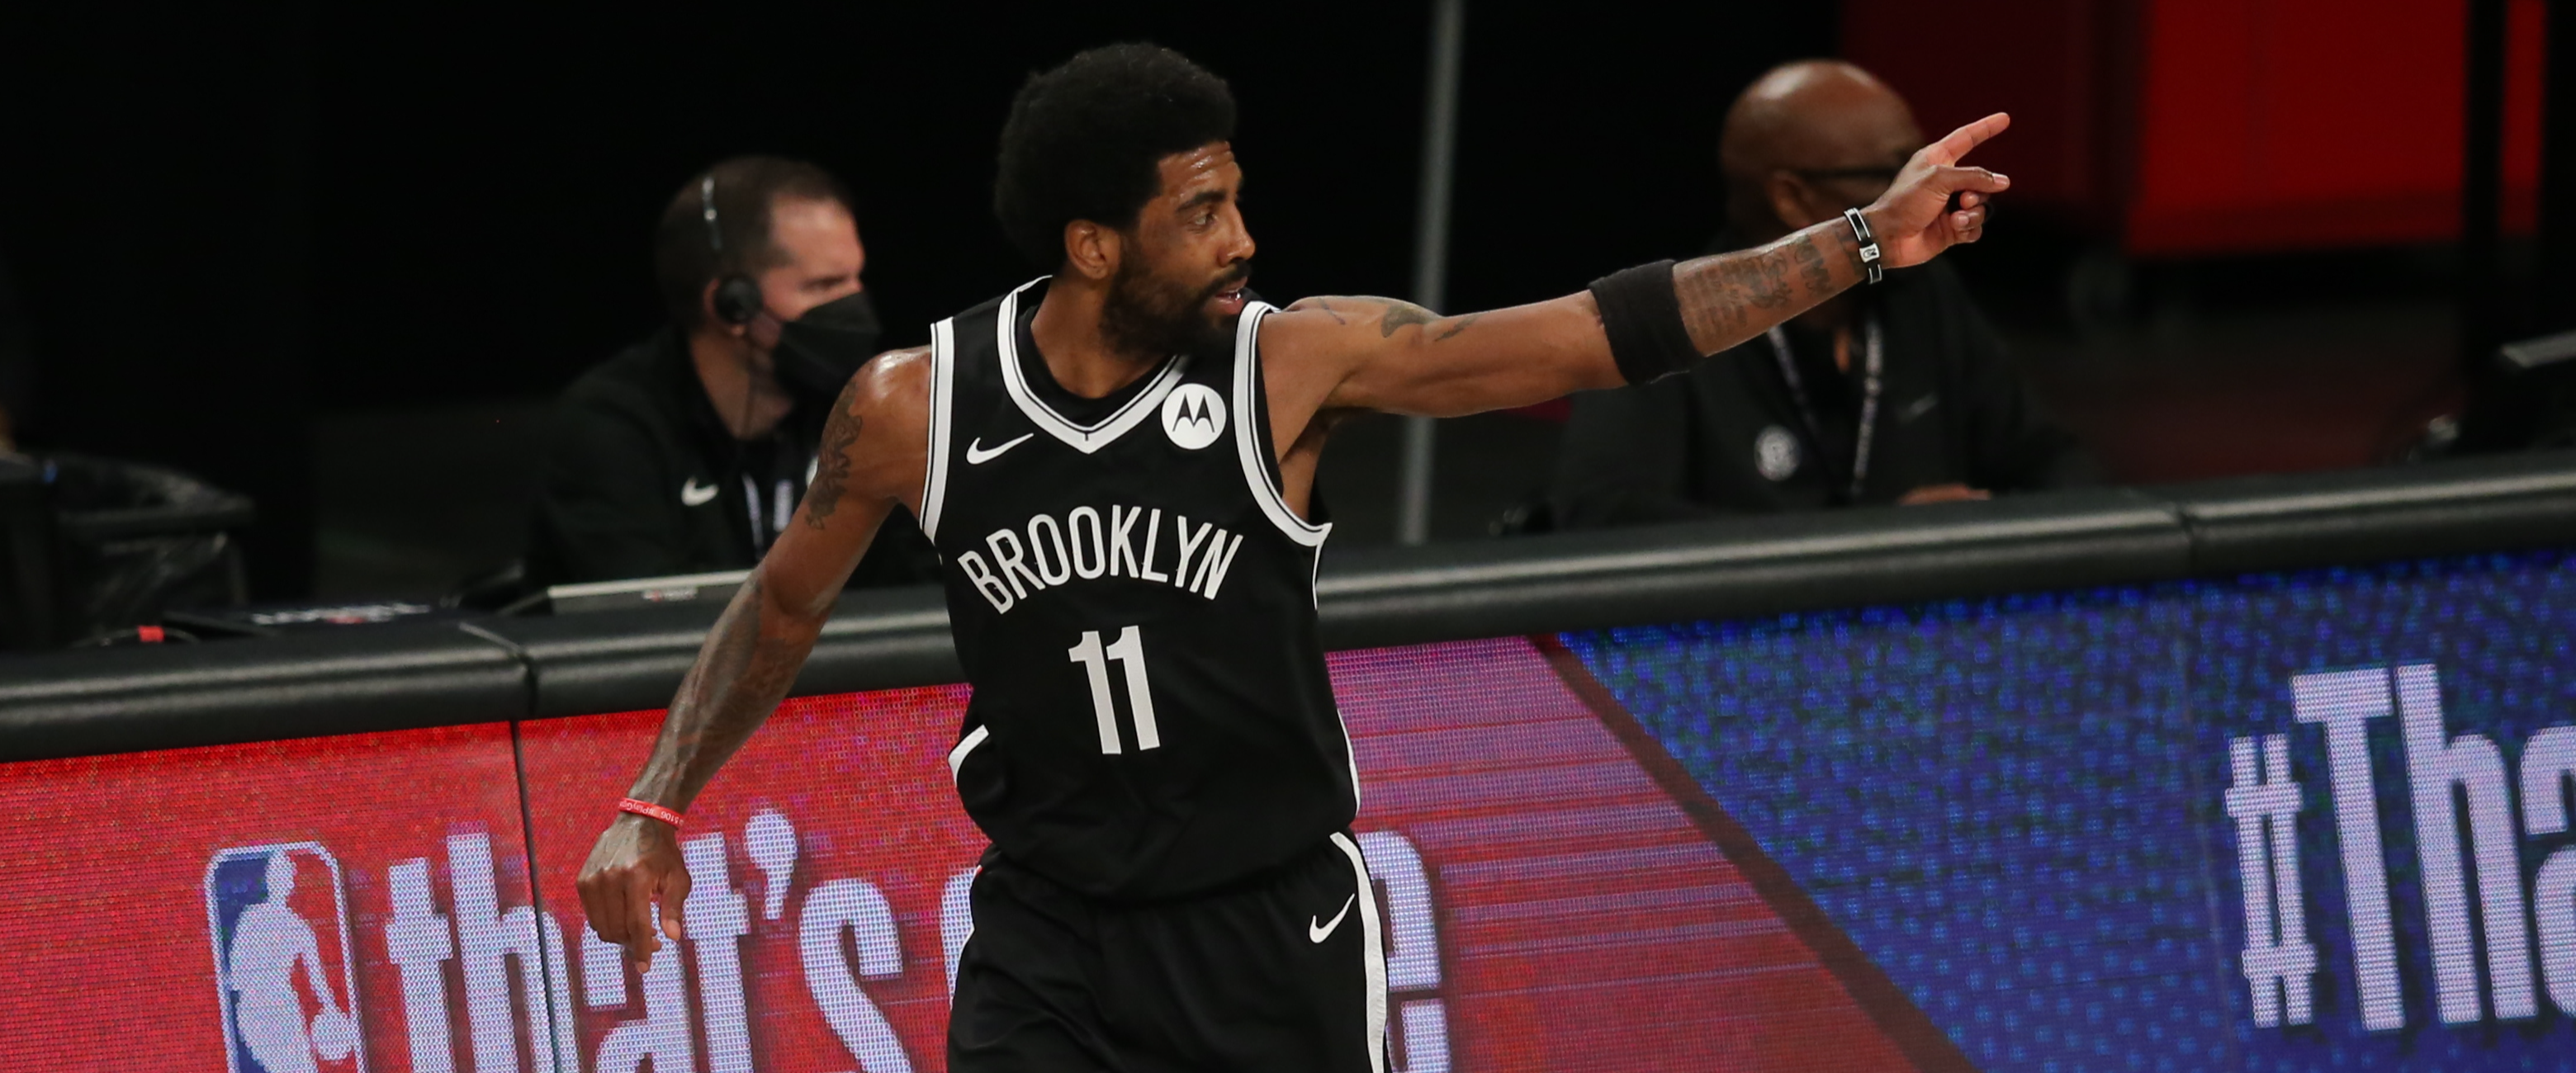 Here's how Kyrie Irving could forfeit $15.5 million this season